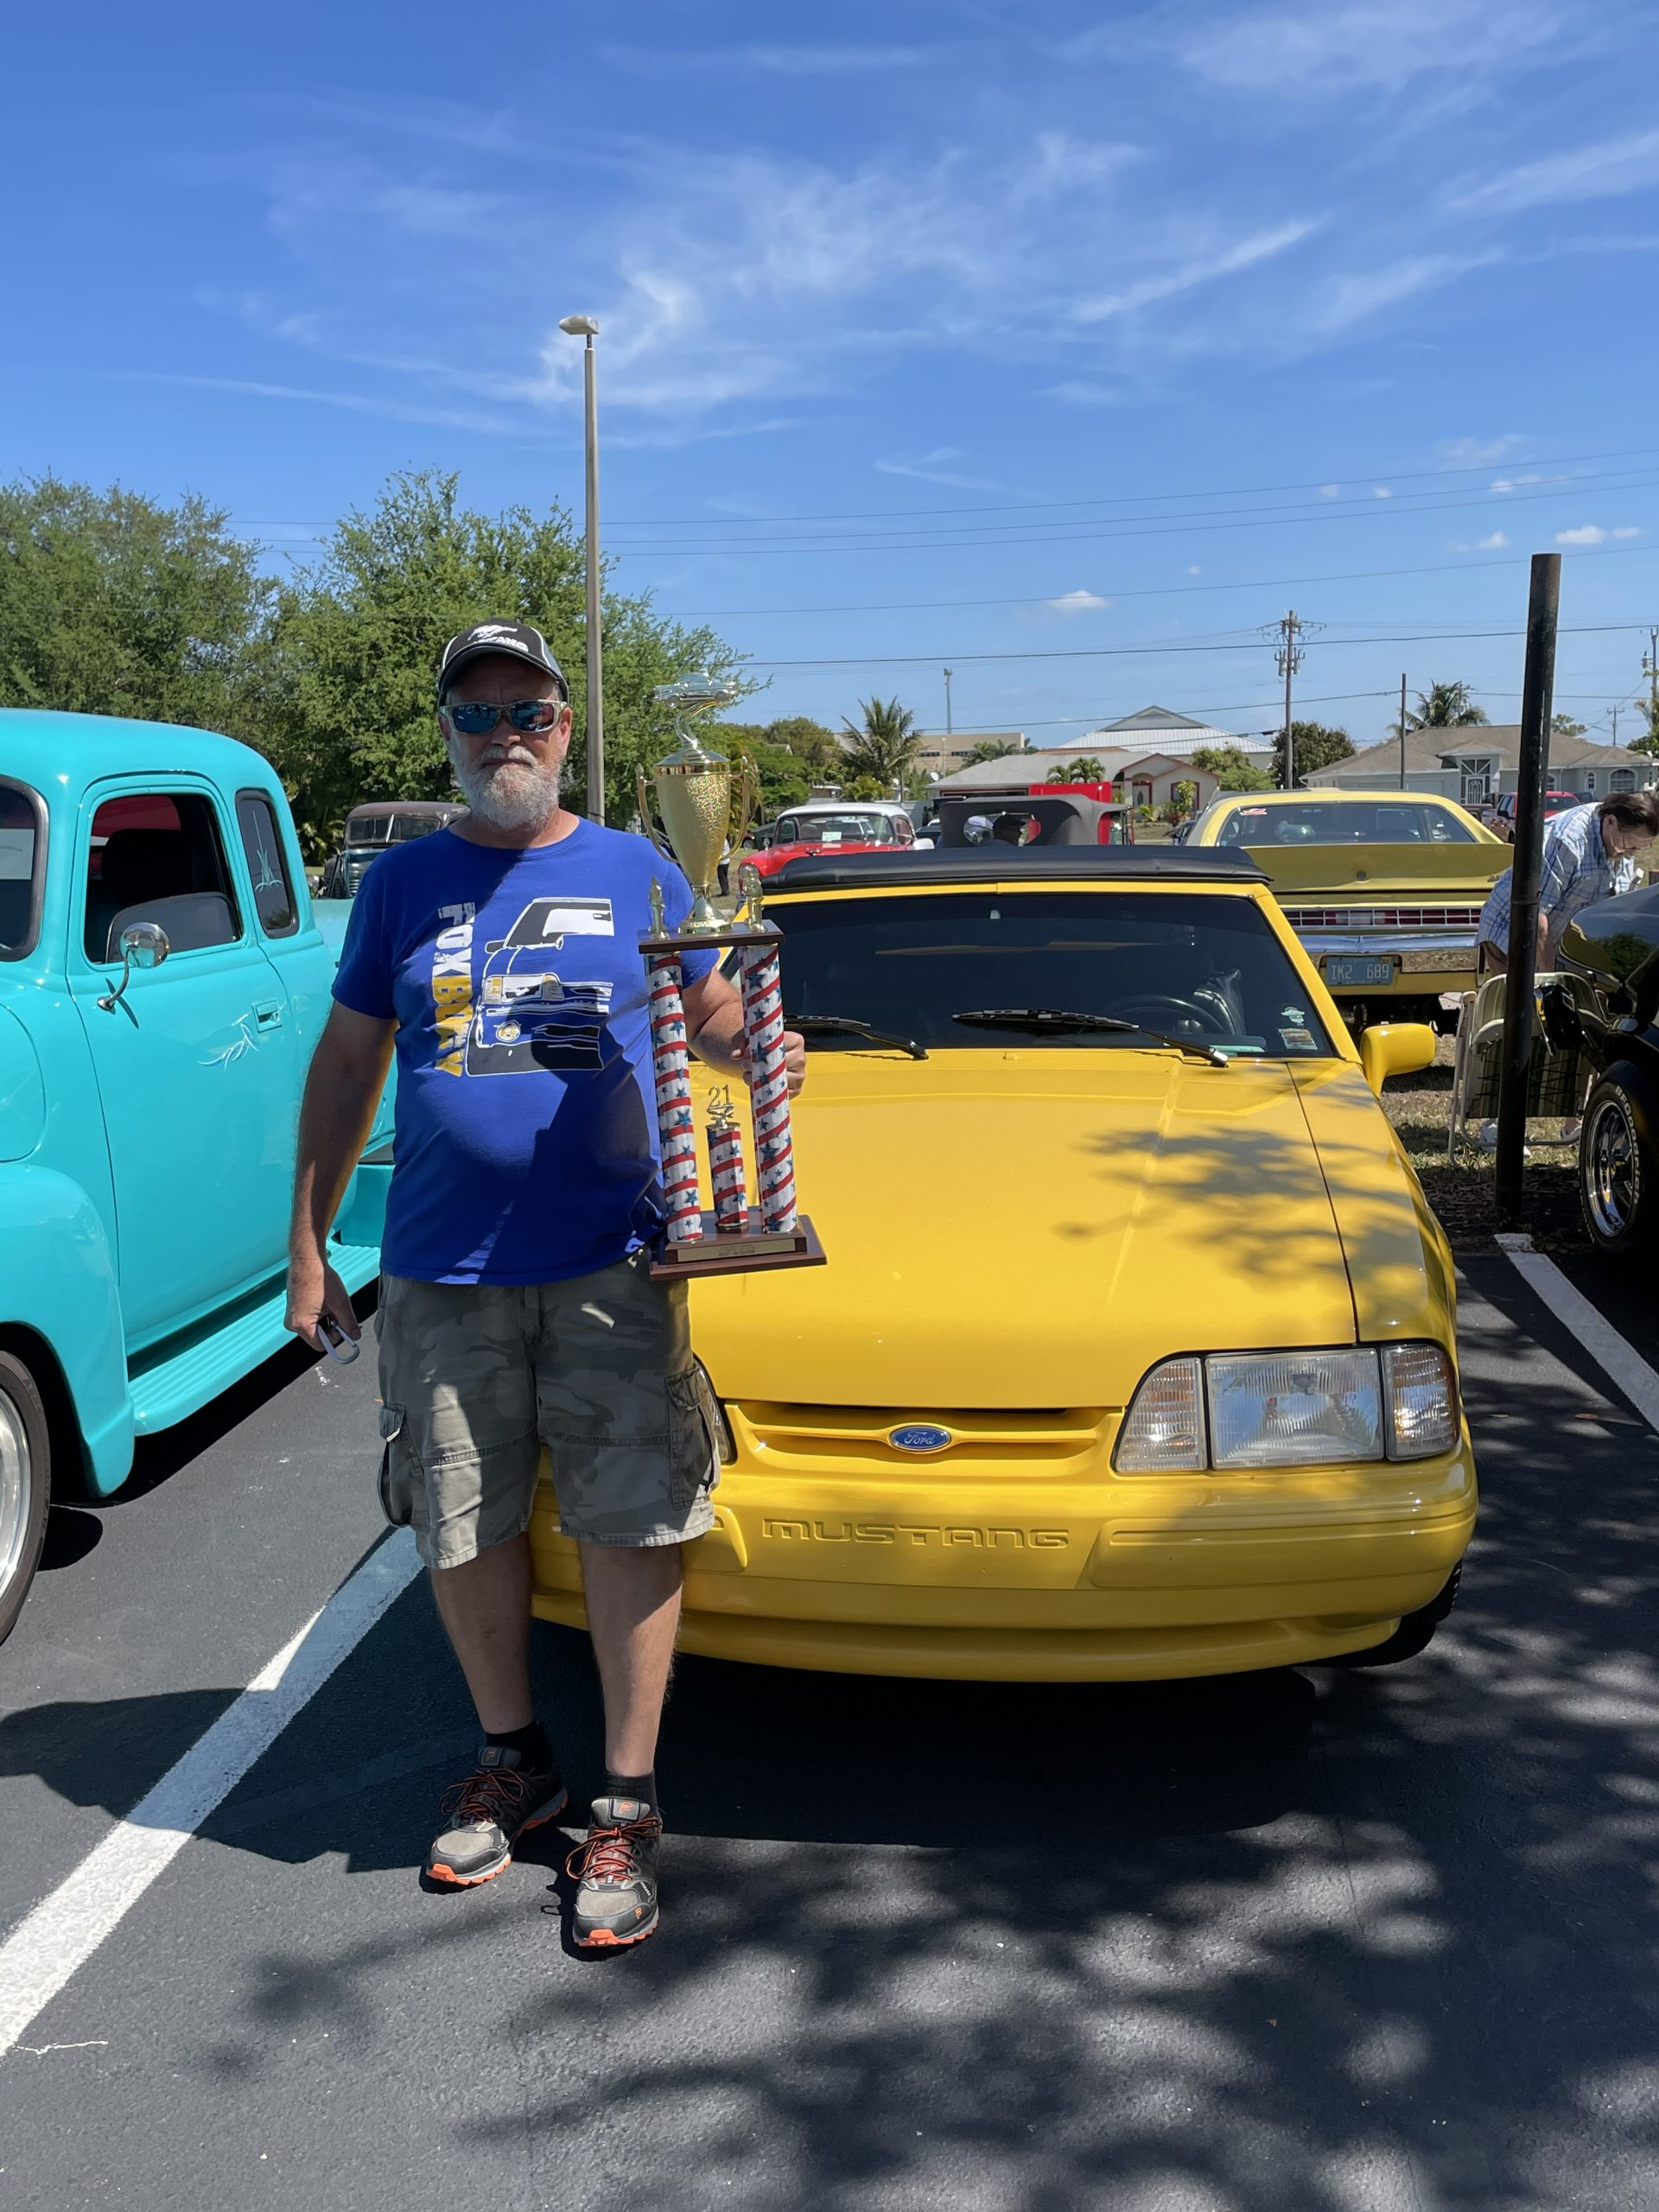 GSMC Club Member with trophy in front of Car